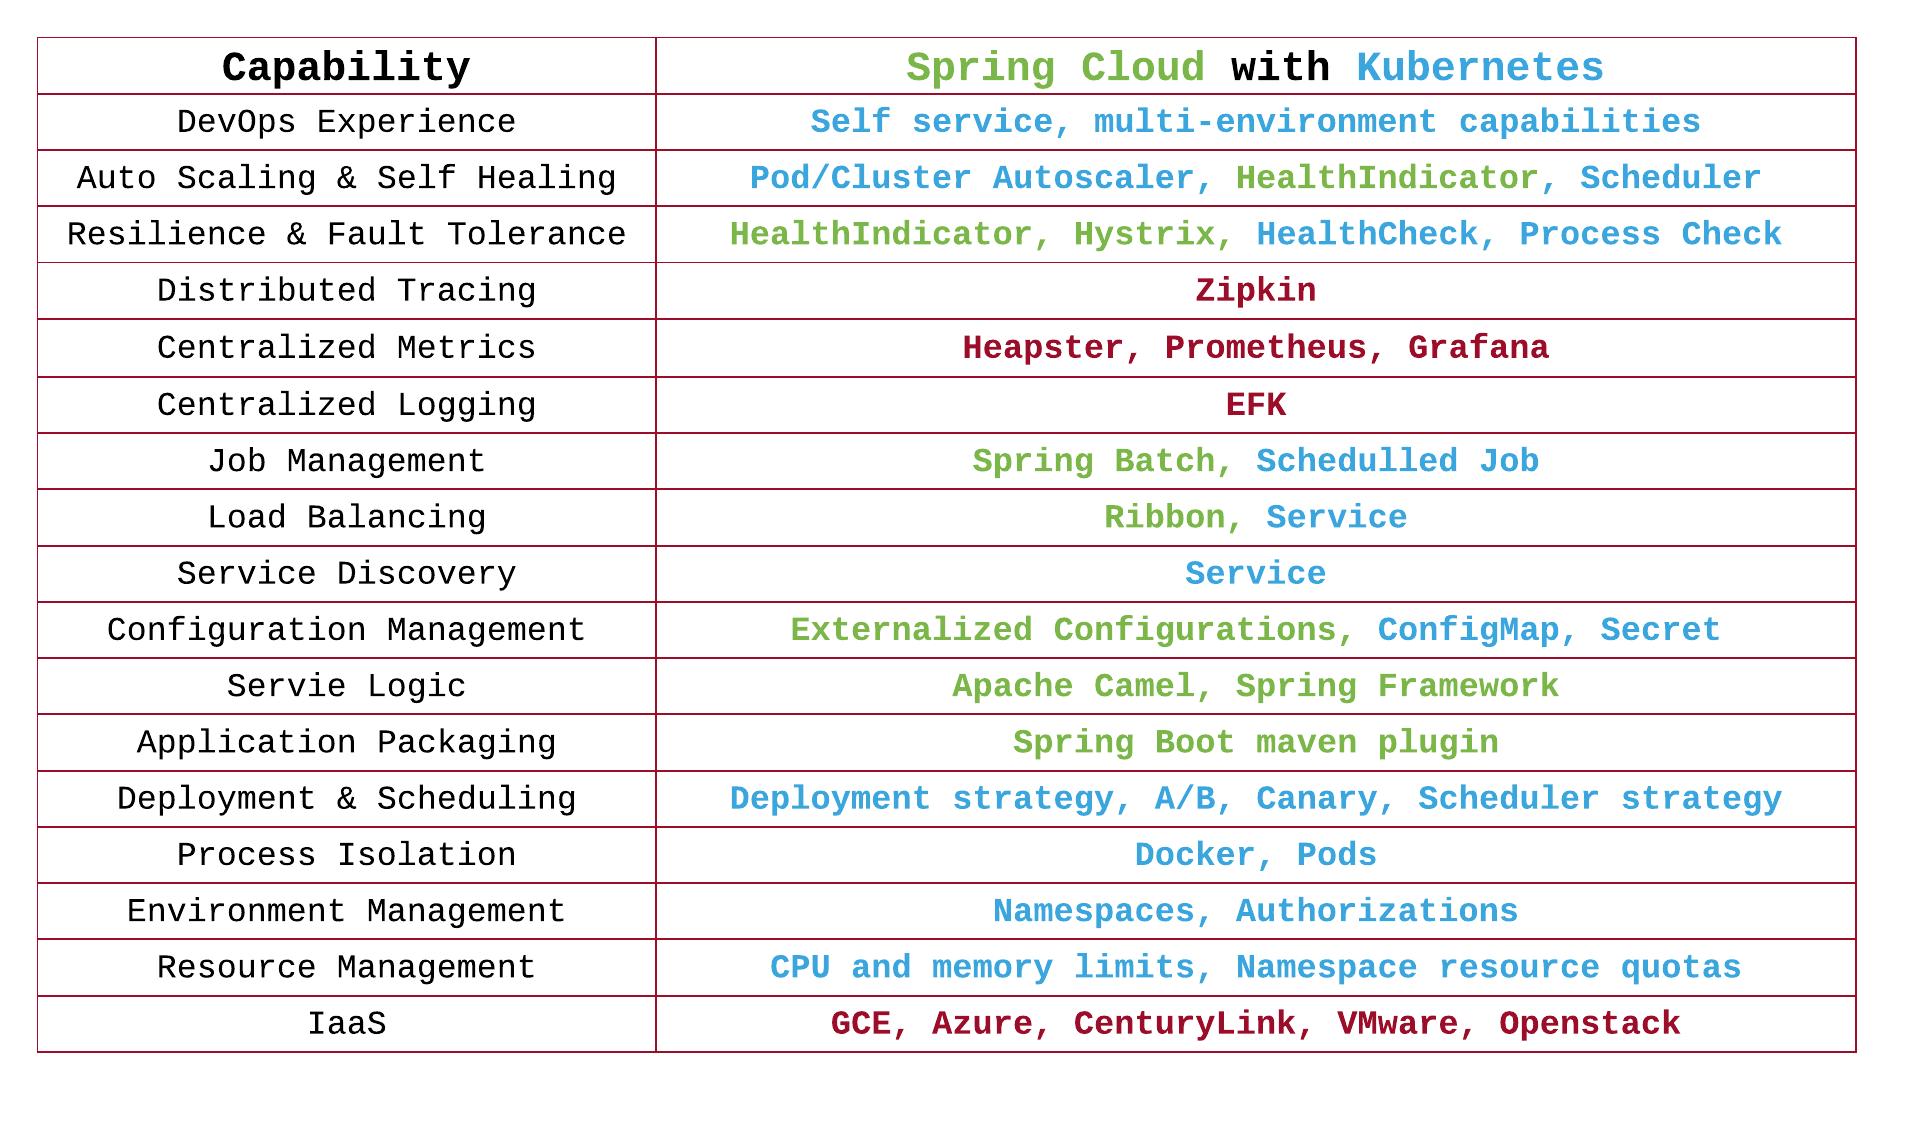 Spring Cloud backed by Kubernetes   Spring Cloud in 2019